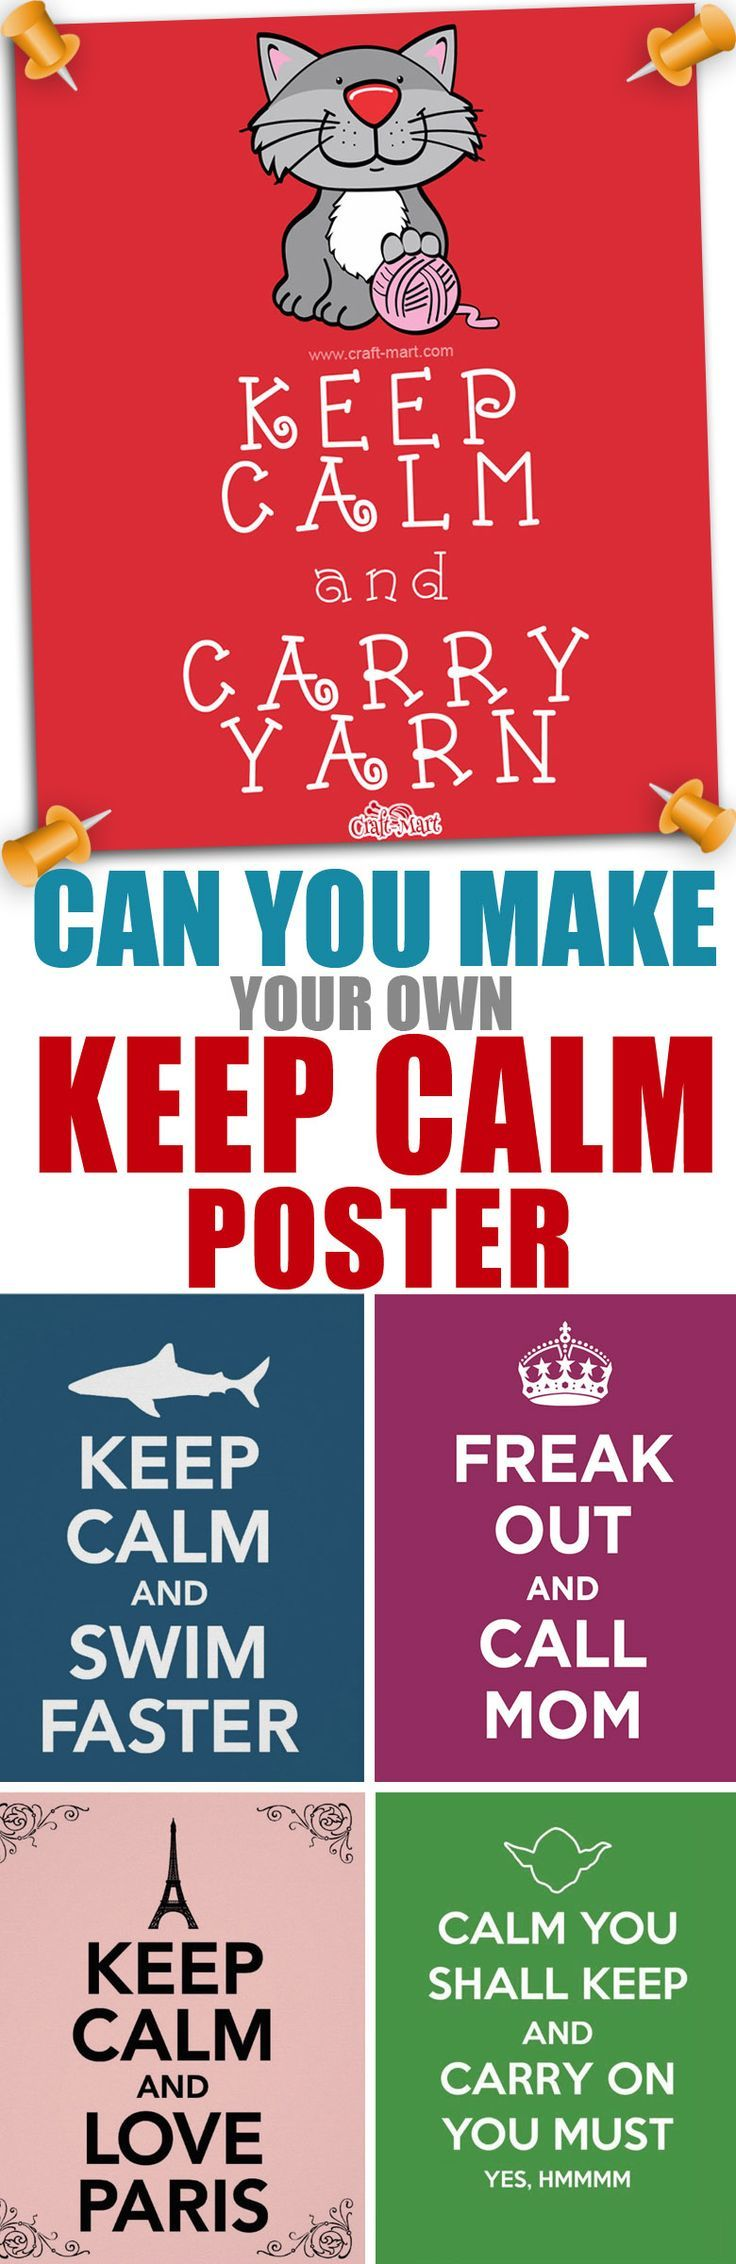 How can you make your own keep calm poster? very easy - just read the article with loads of funny variations and see the list of Keep Calm poster makers online. #keepcalm #posterdesign #posters